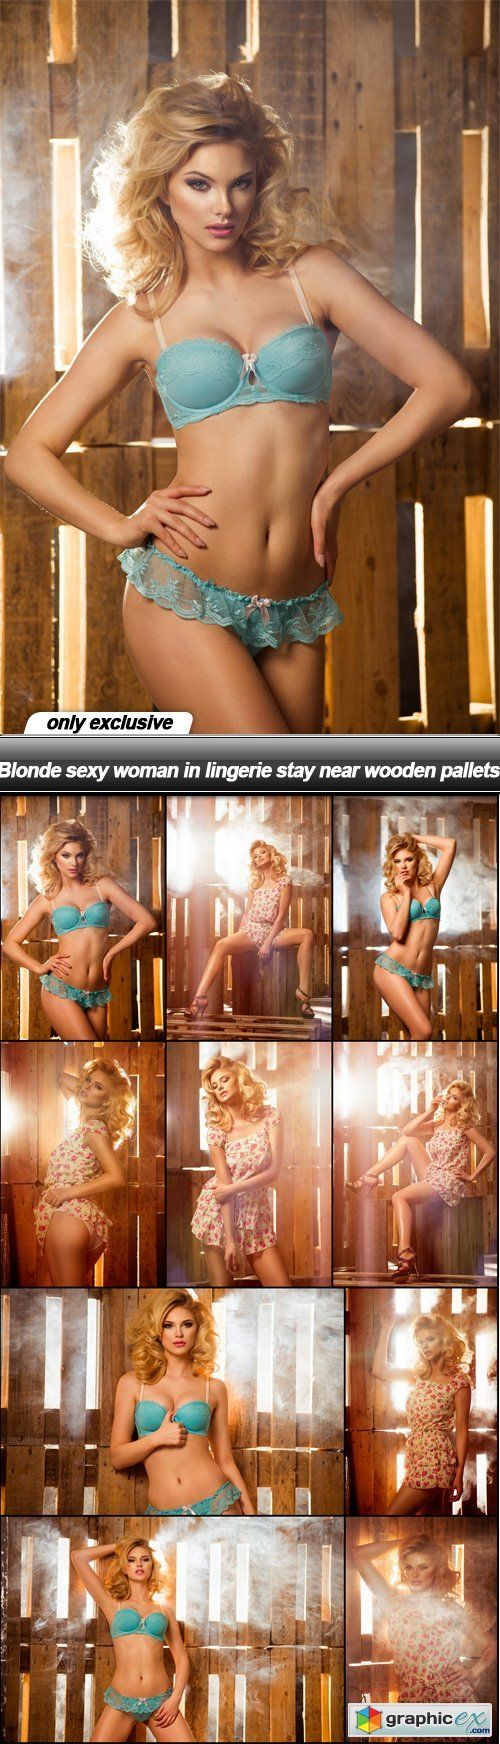 Blonde sexy woman in lingerie stay near wooden pallets  10 UHQ JPEG  stock images